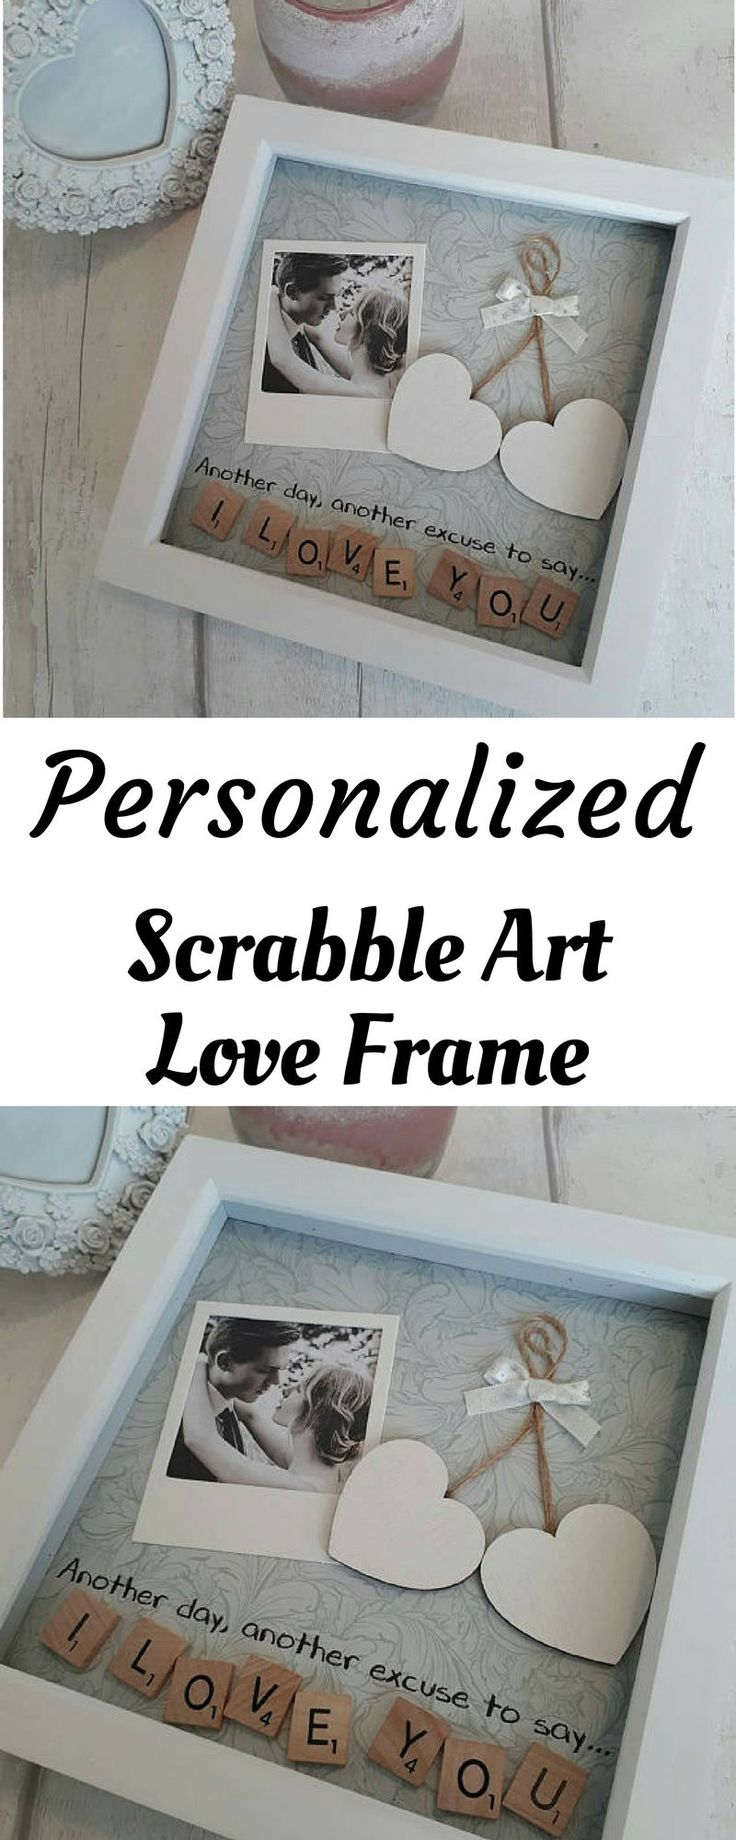 Valentines gift, Anniversary Gift Partner, Personalized Scrabble Art Frame, Present For Husband, Gift For Wife, Gift For Boyfriend #boyfriendanniversarygifts